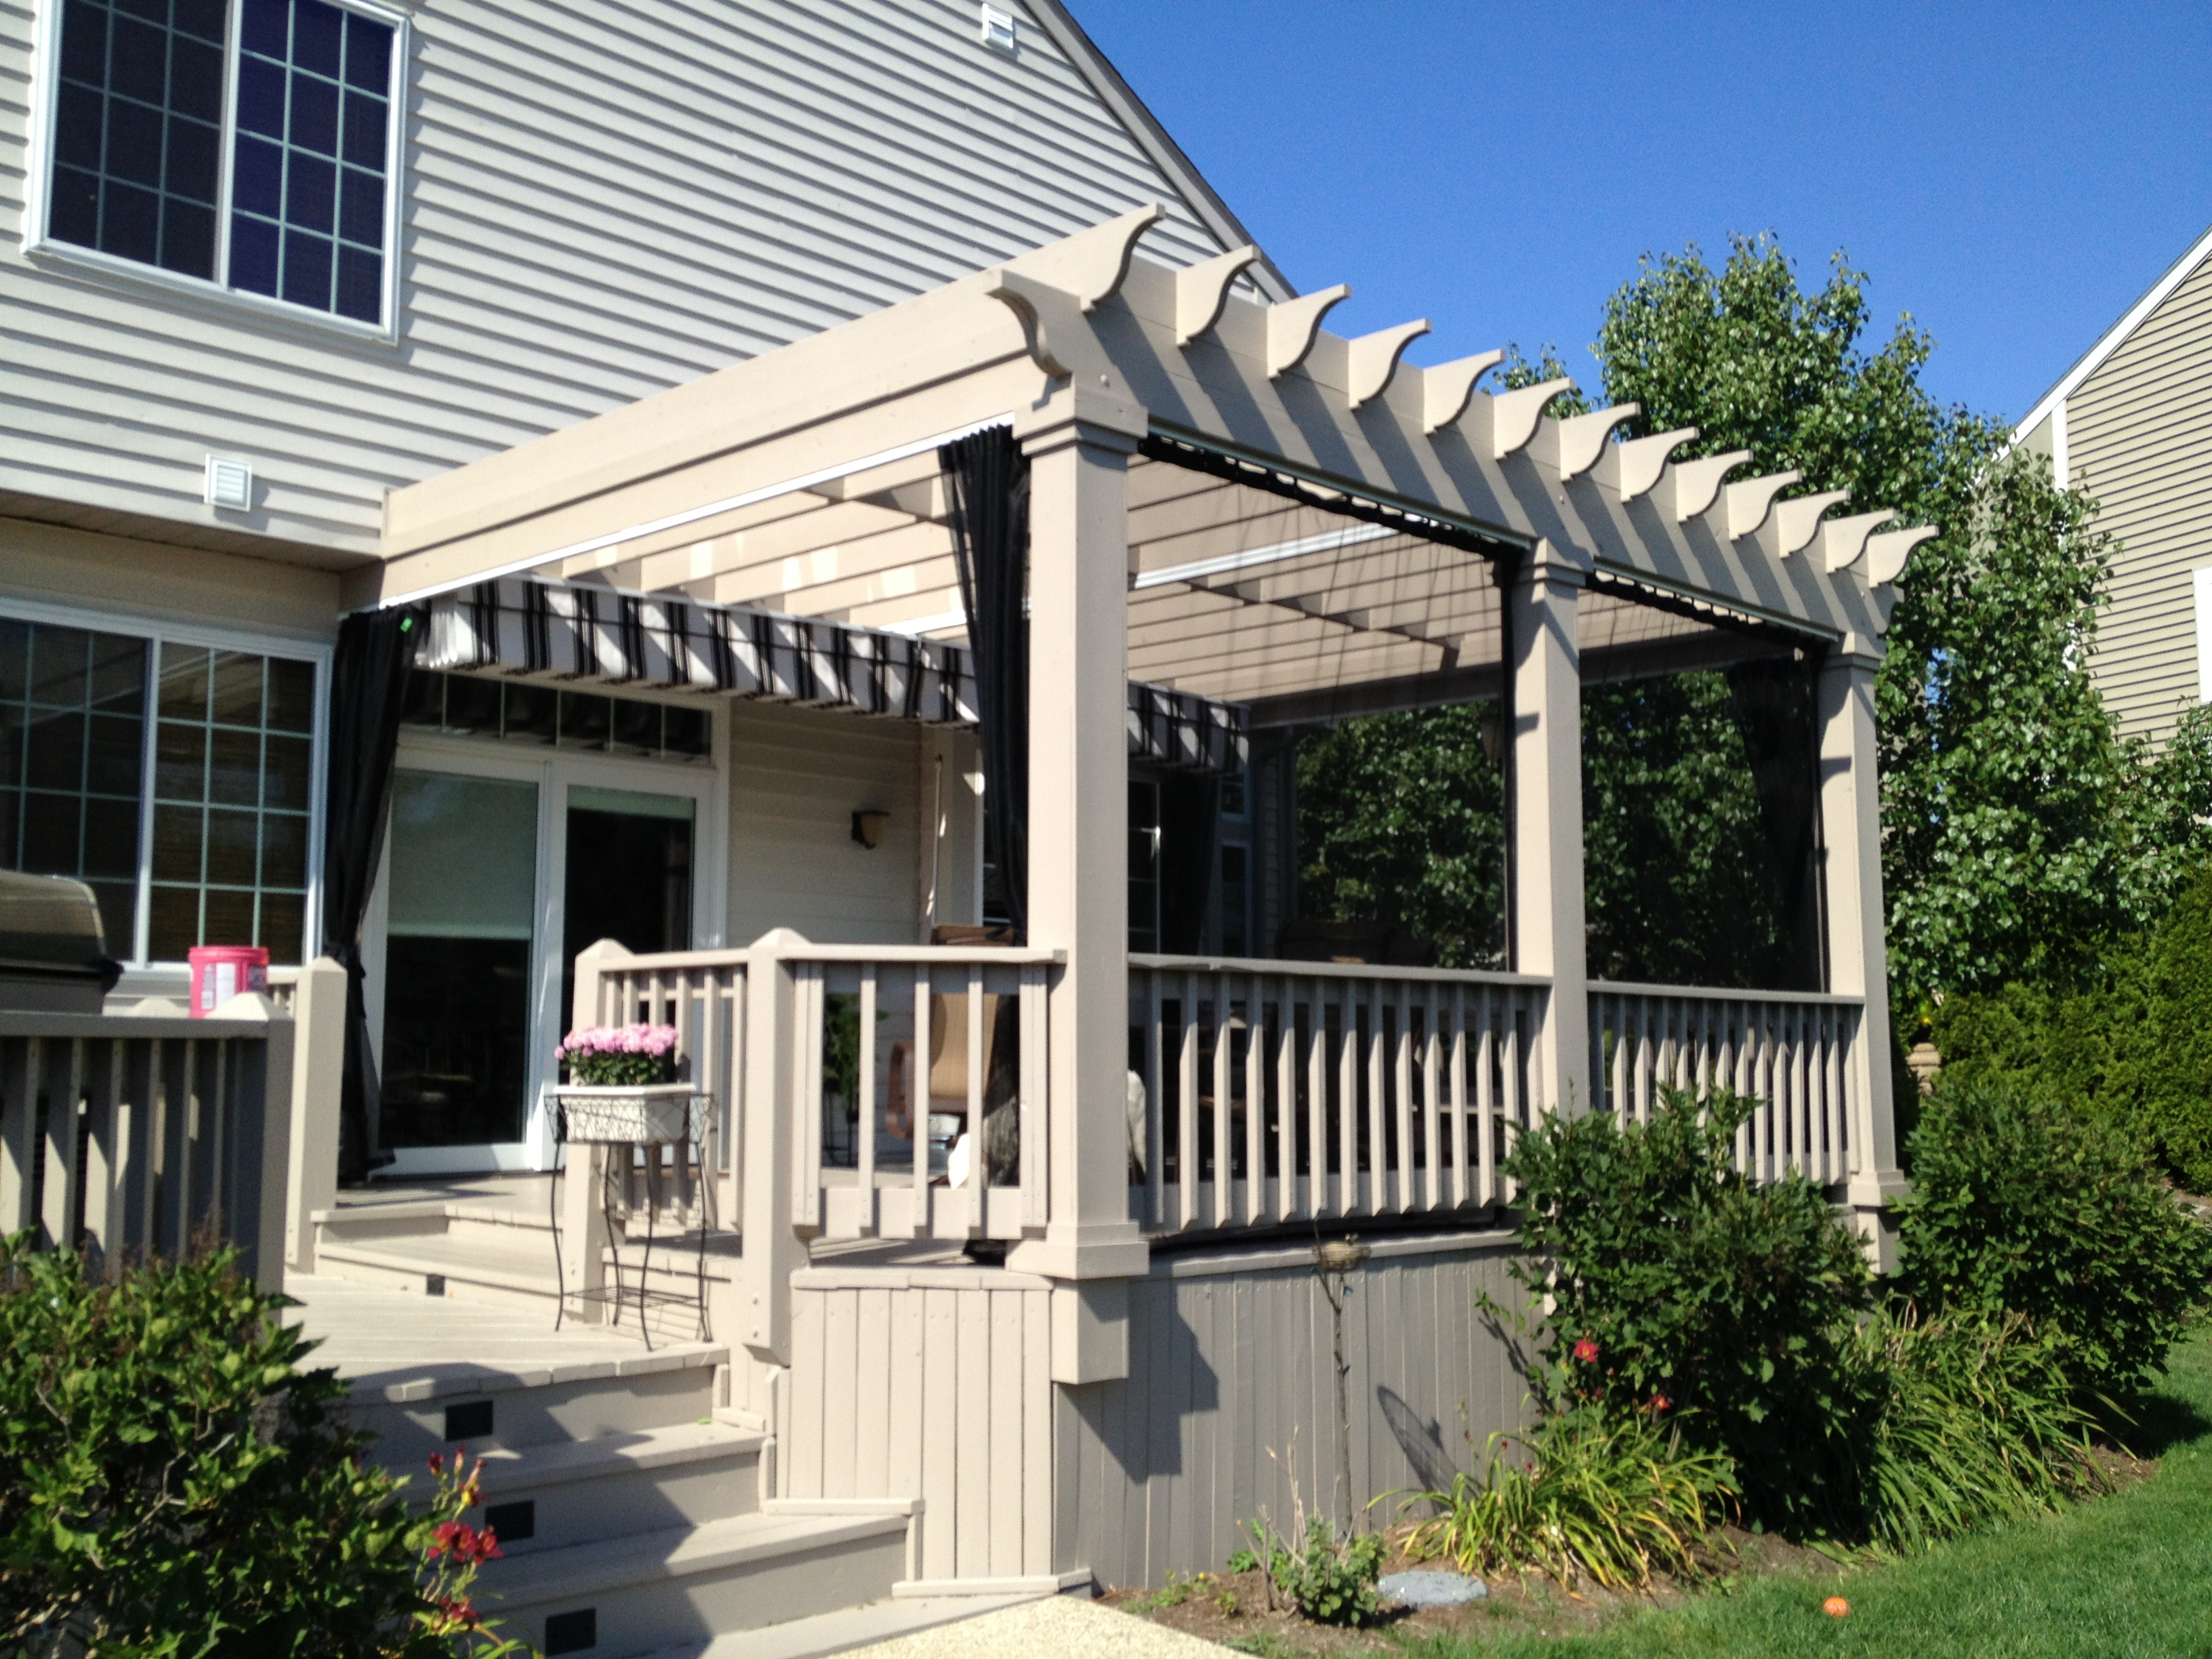 Pergola with Mosquito Curtains an Alternative to a Screened in